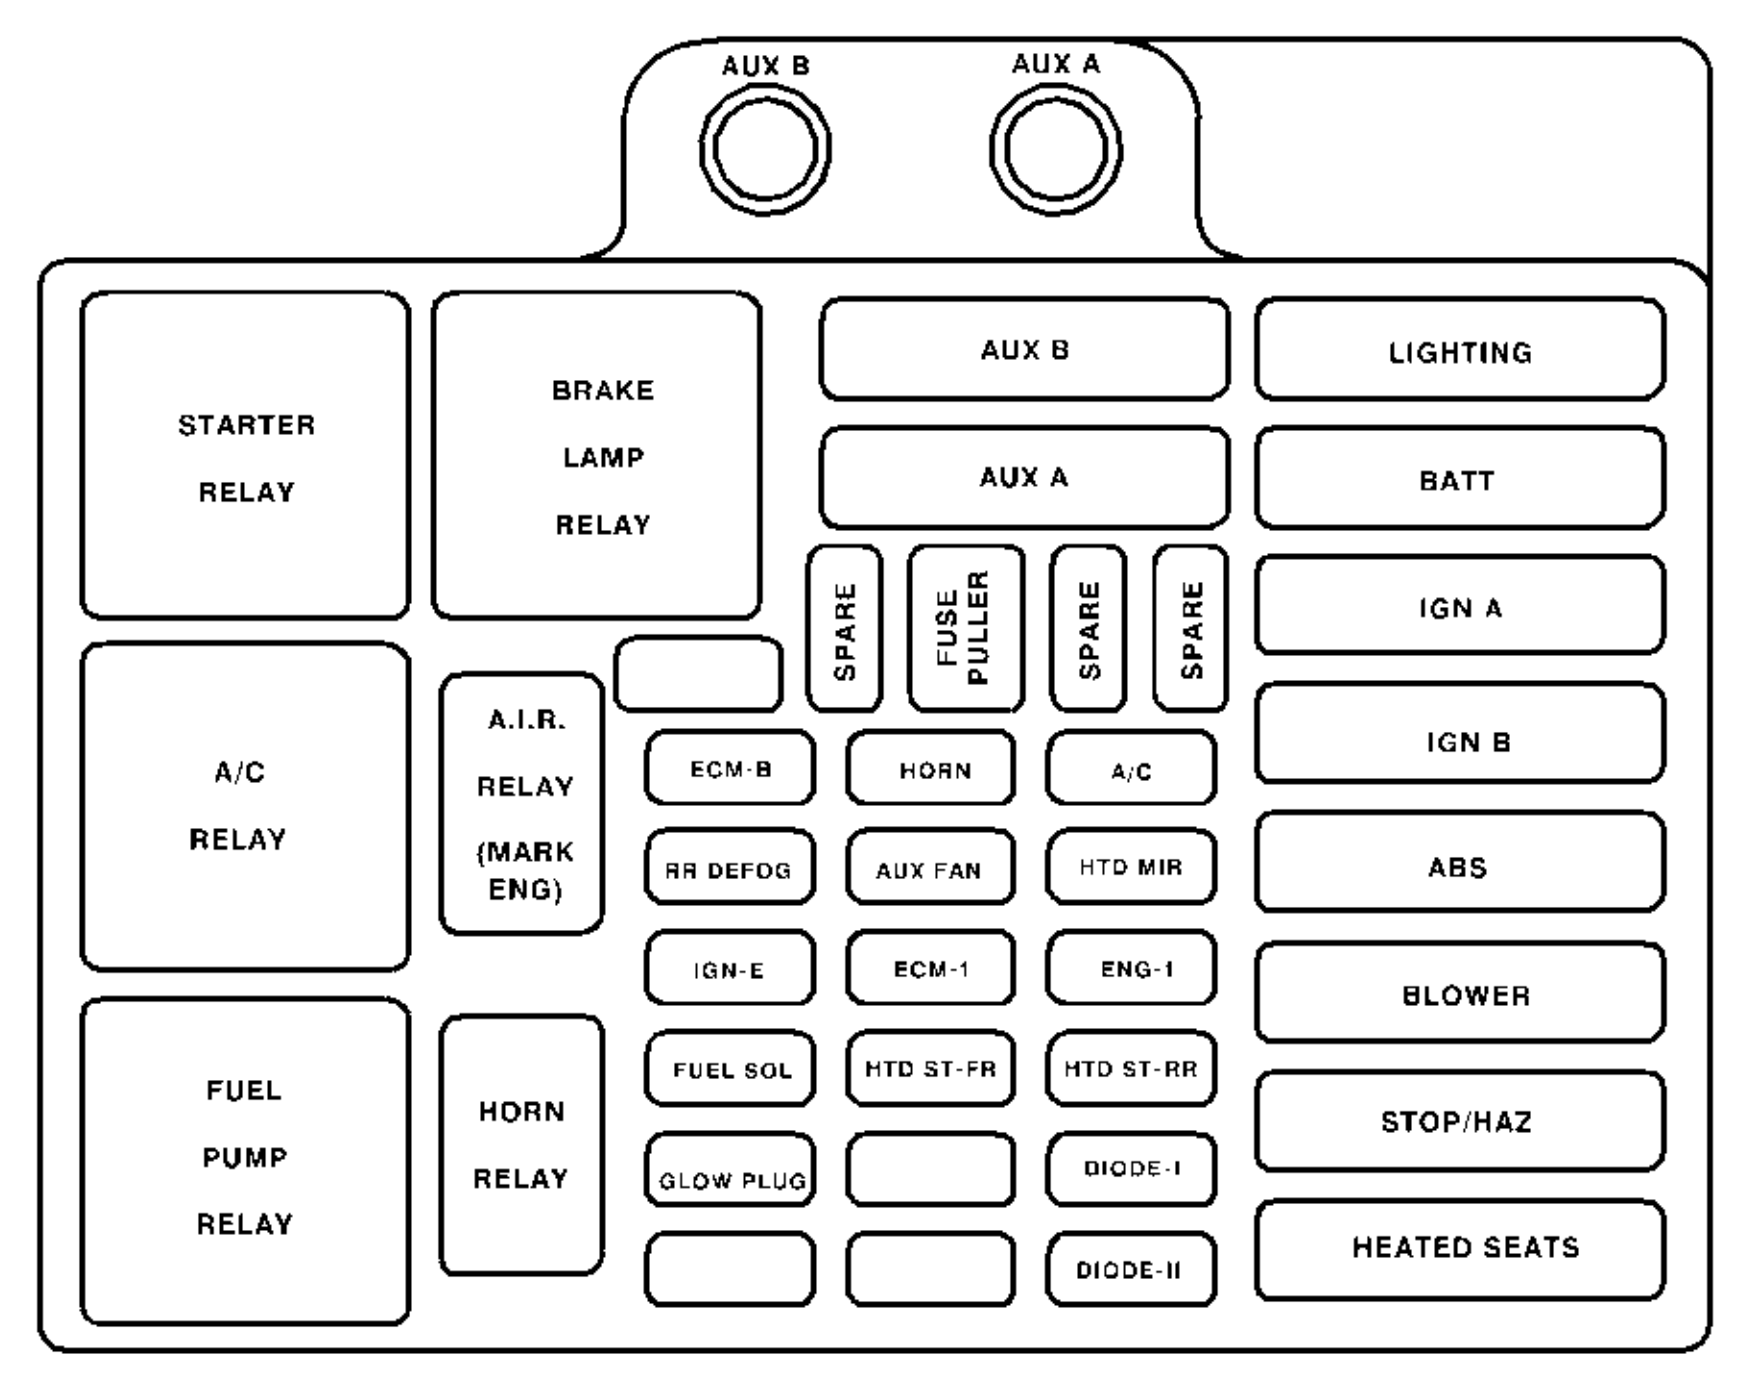 Fuse Box Connection : Chevrolet suburban fuse box diagram carknowledge